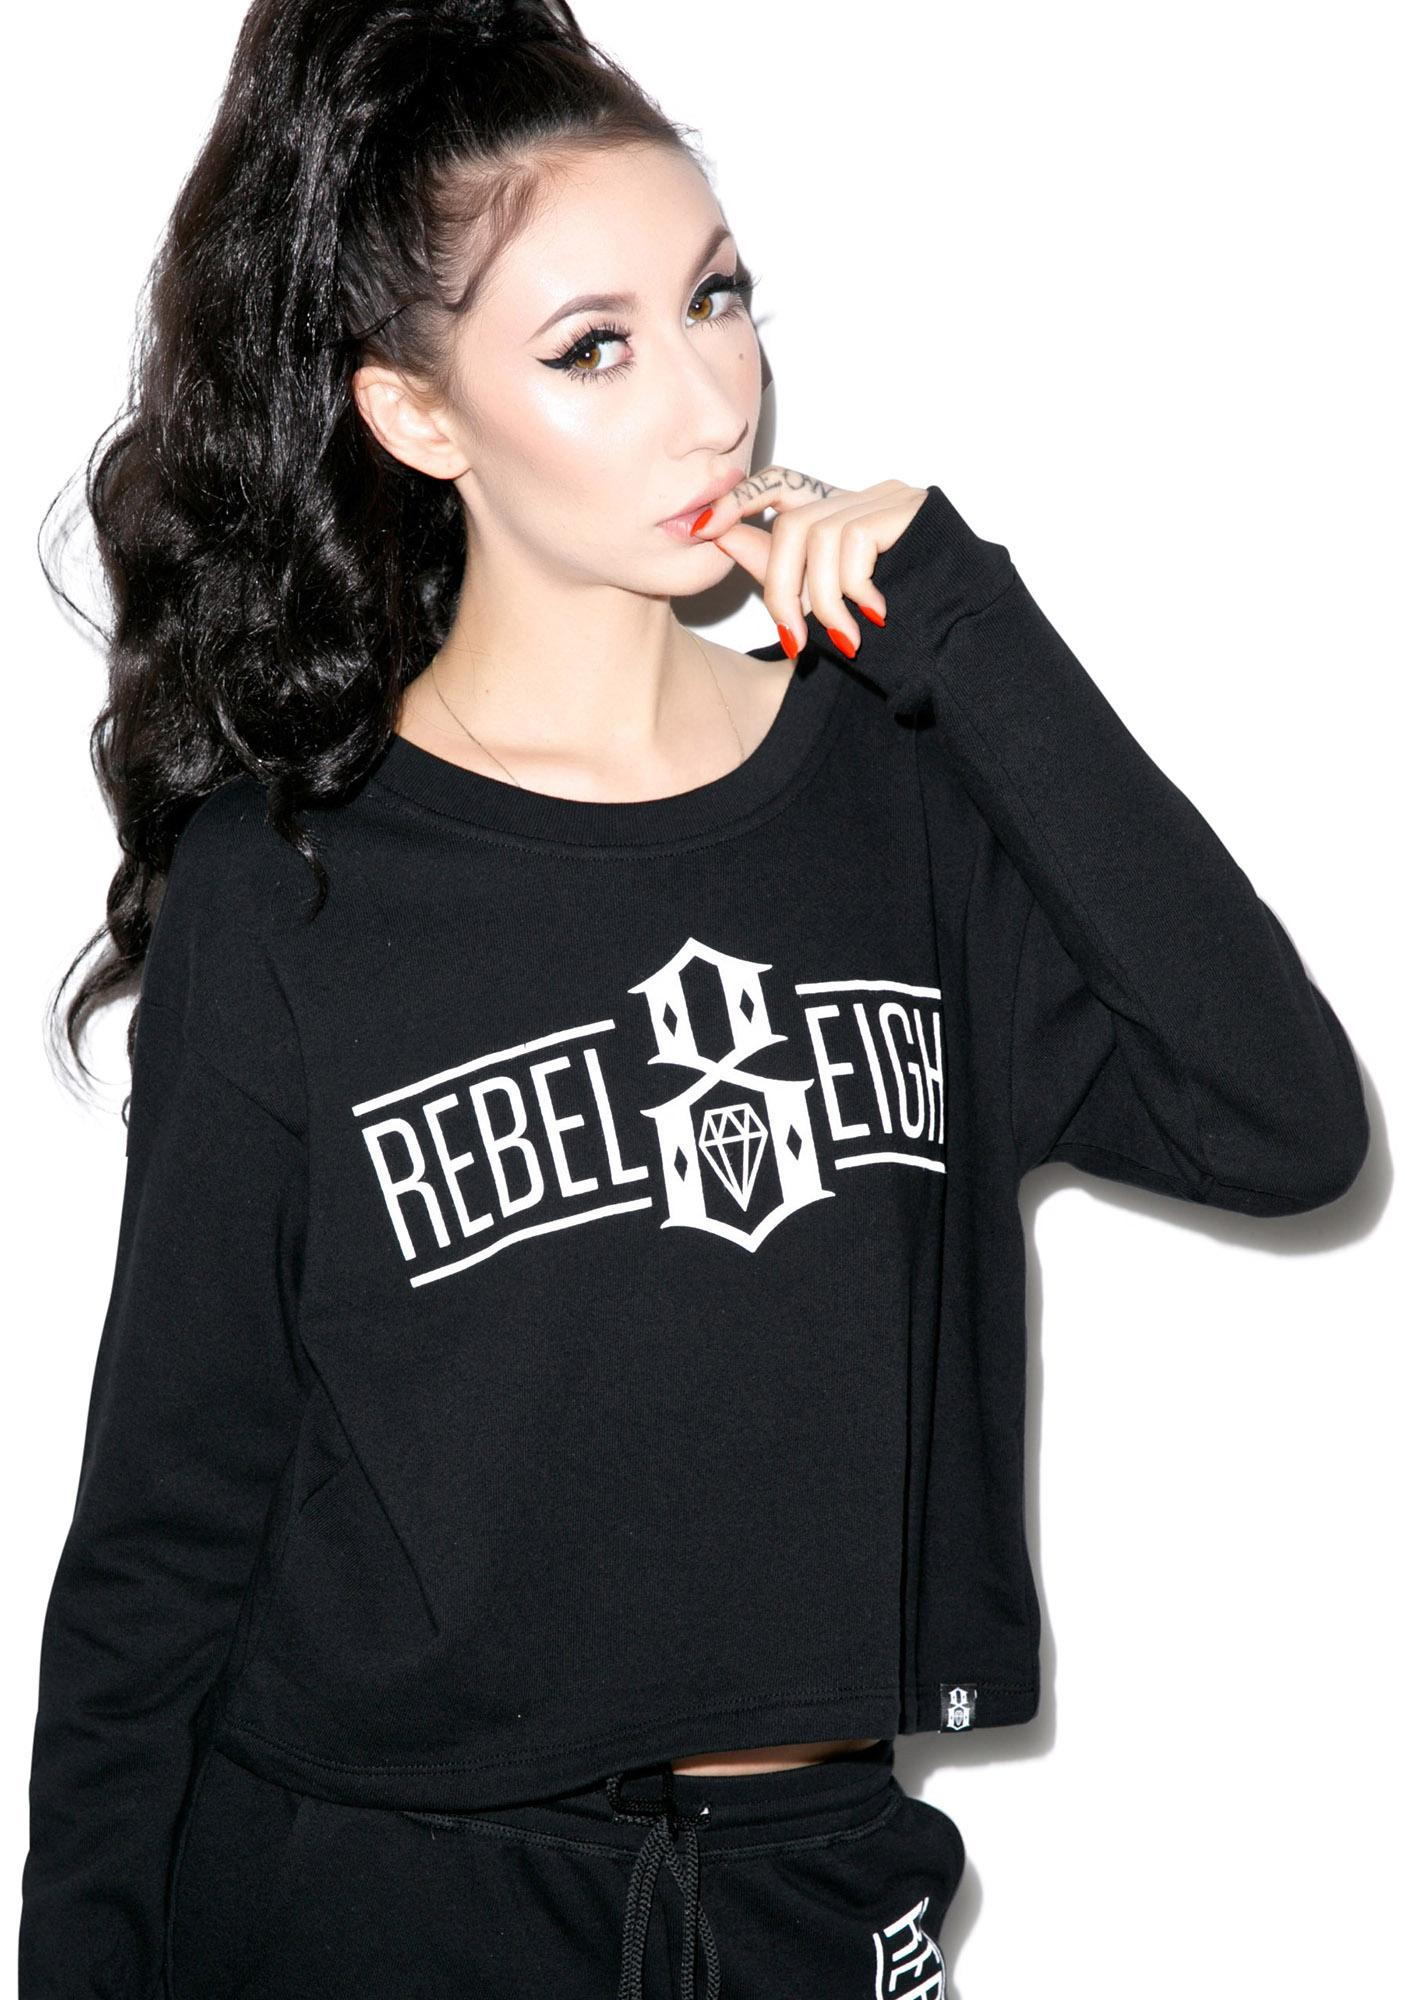 Rebel8 Logo Crop Top Sweatshirt